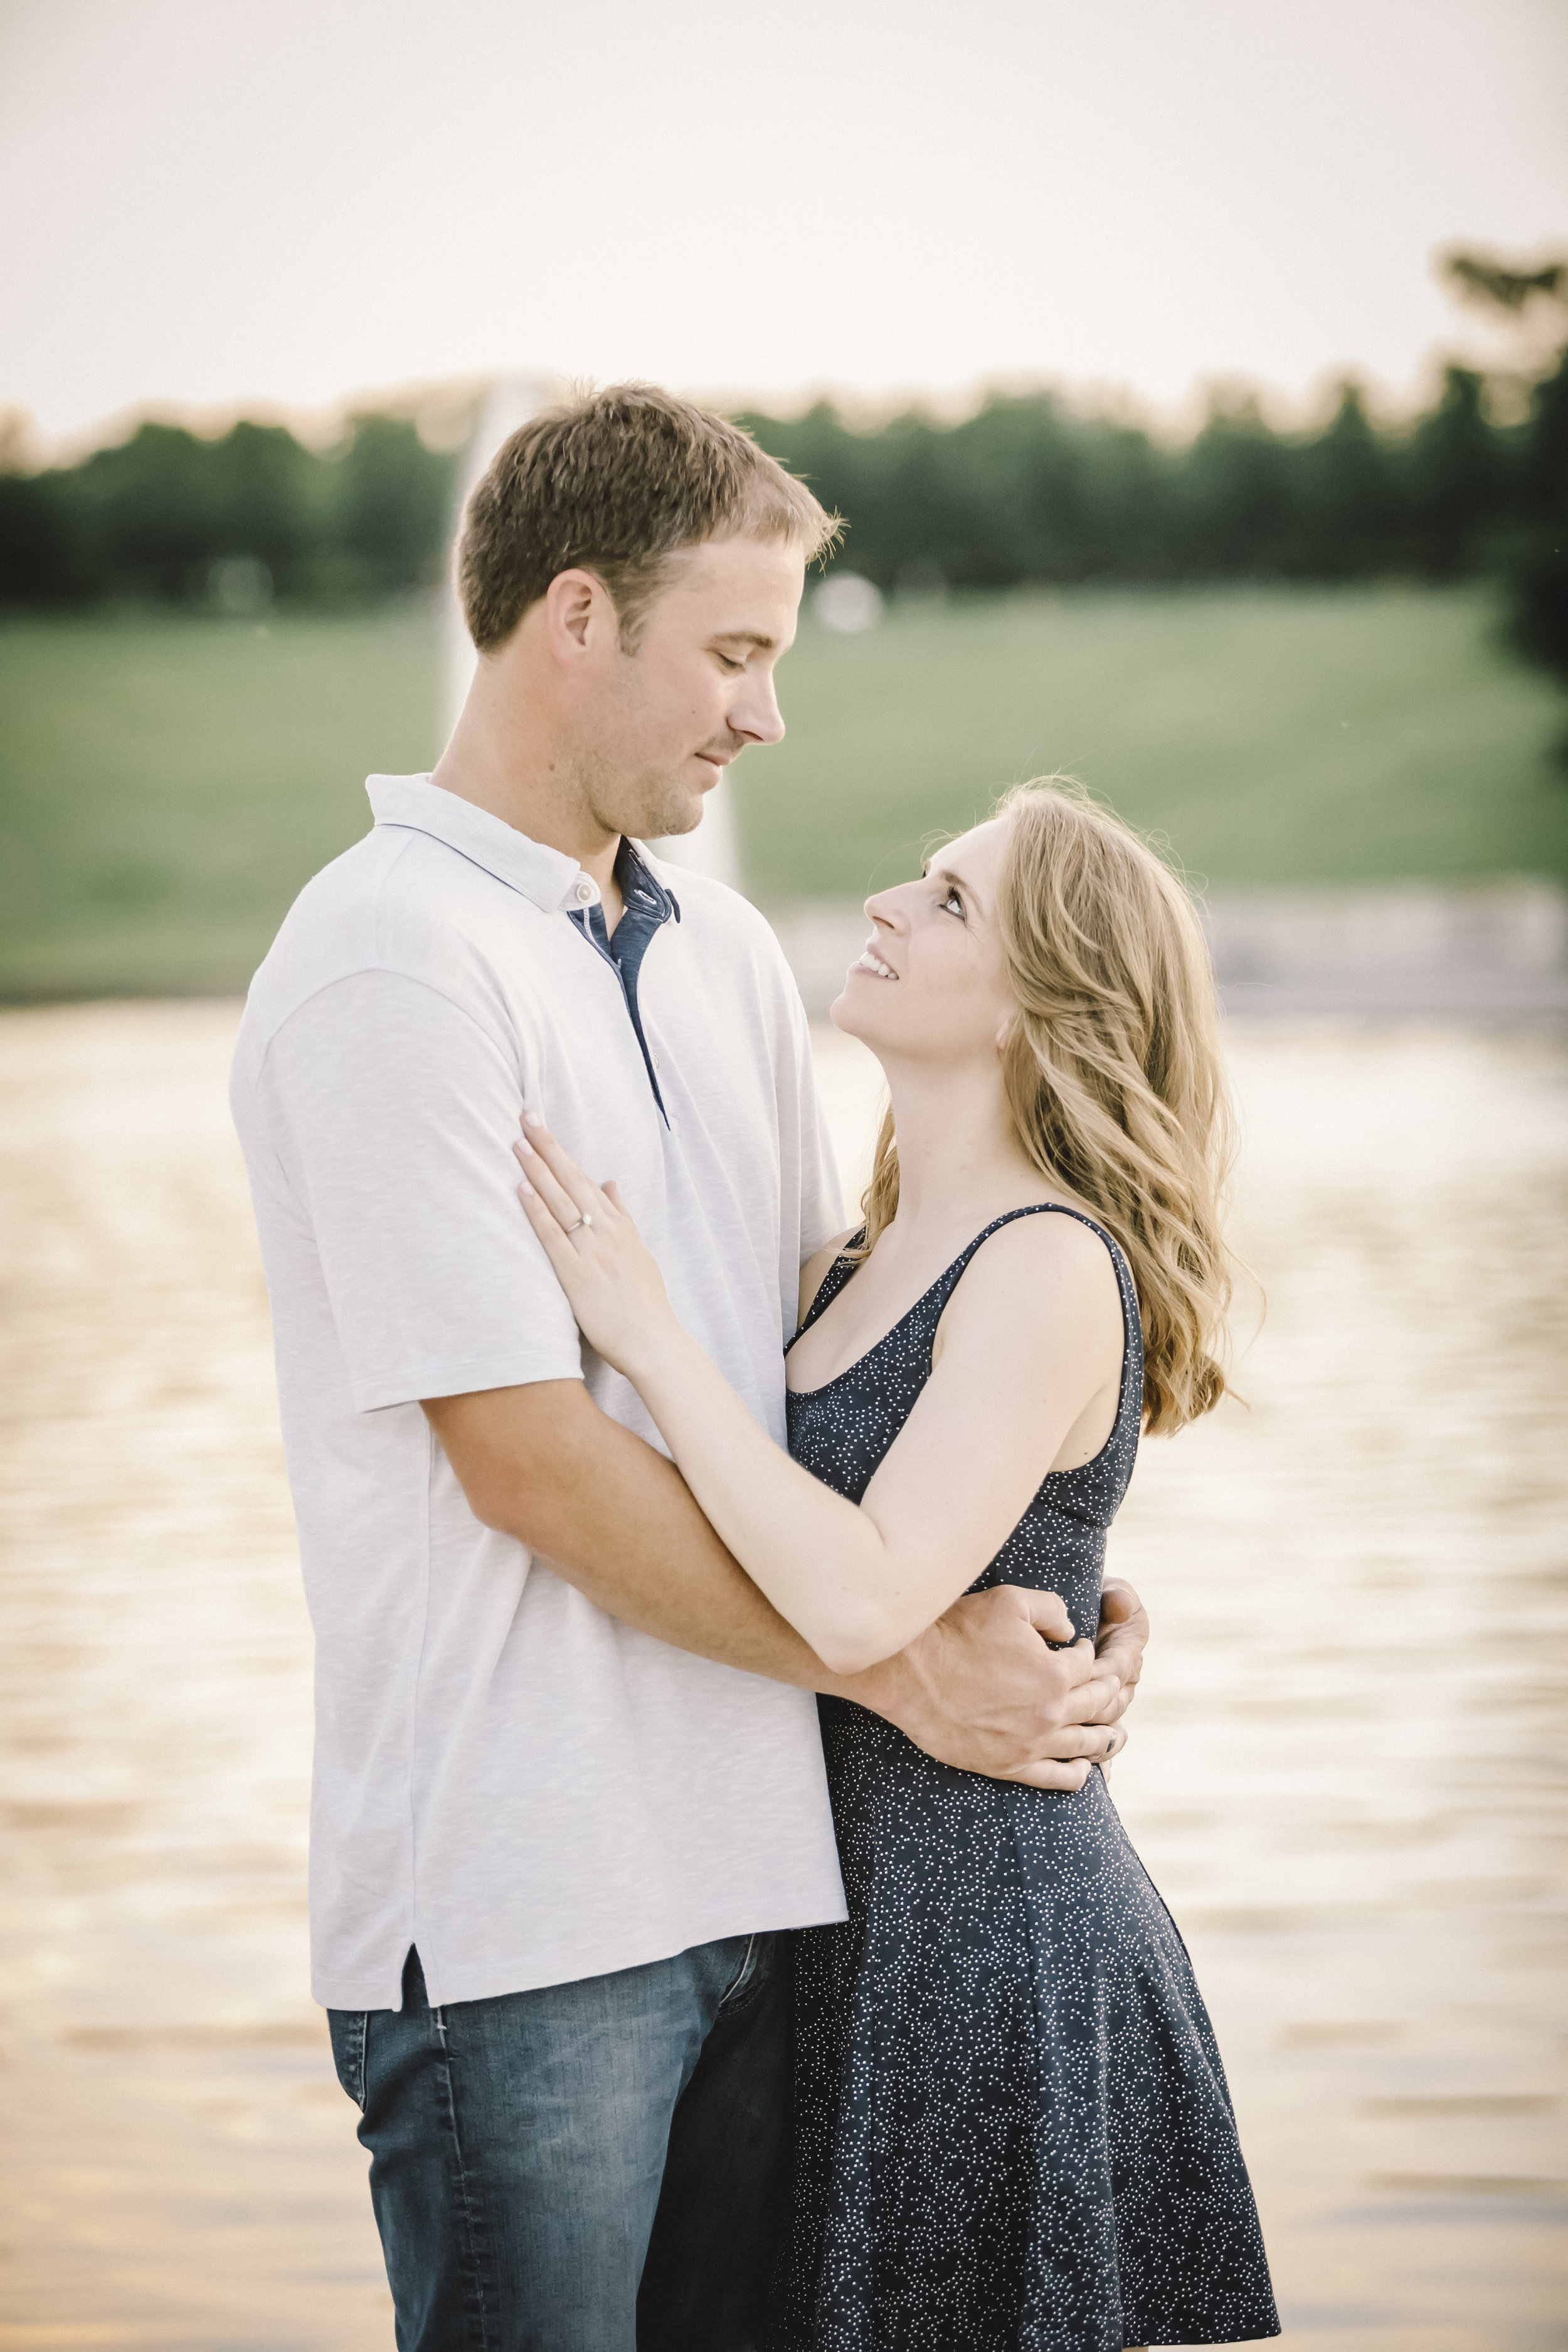 Rebecca_K_Clark_Photography_Engagement_Gallery_Web-42.JPG